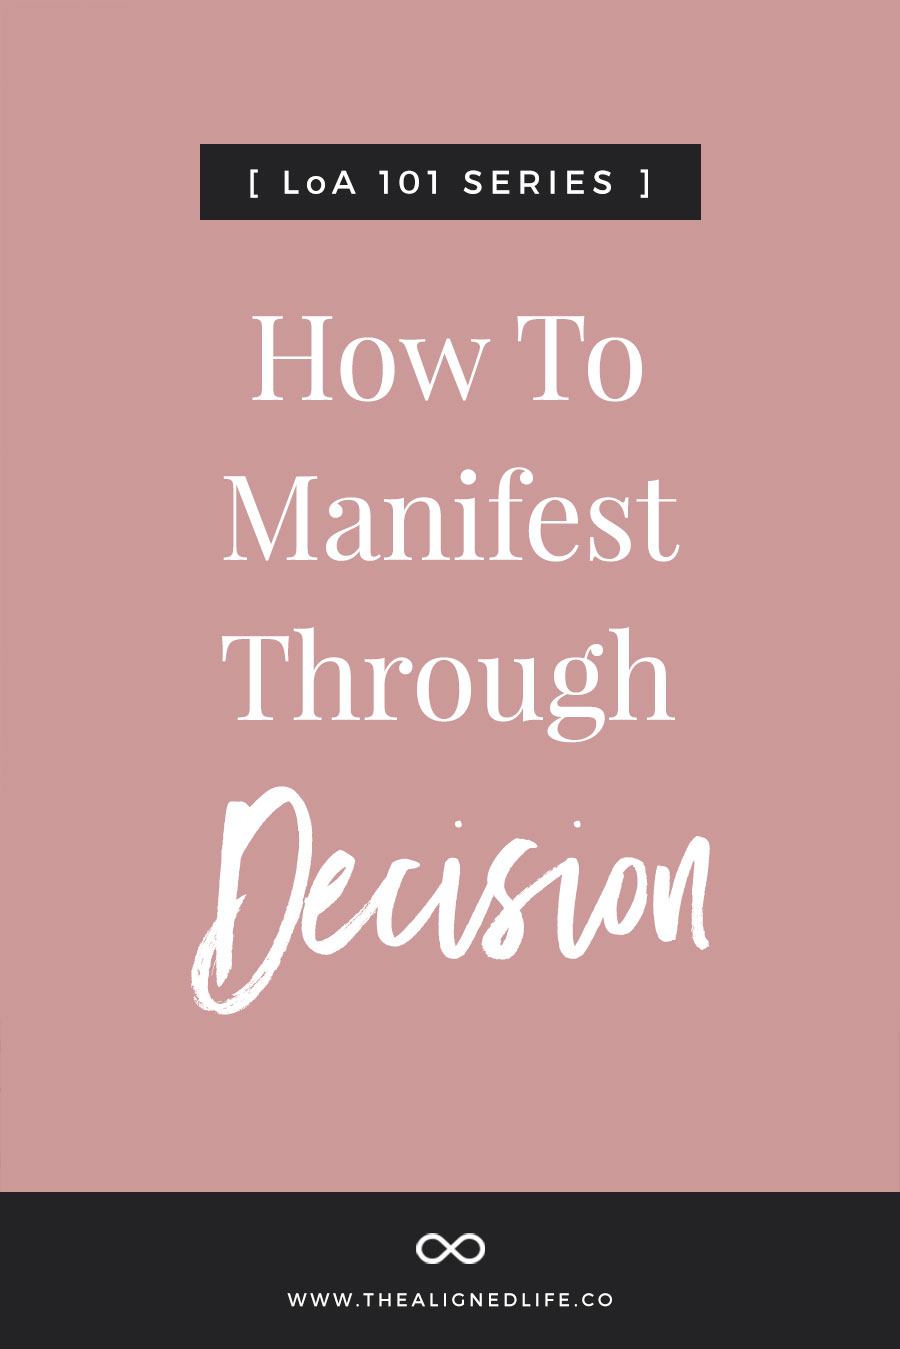 How To Manifest Through Decision